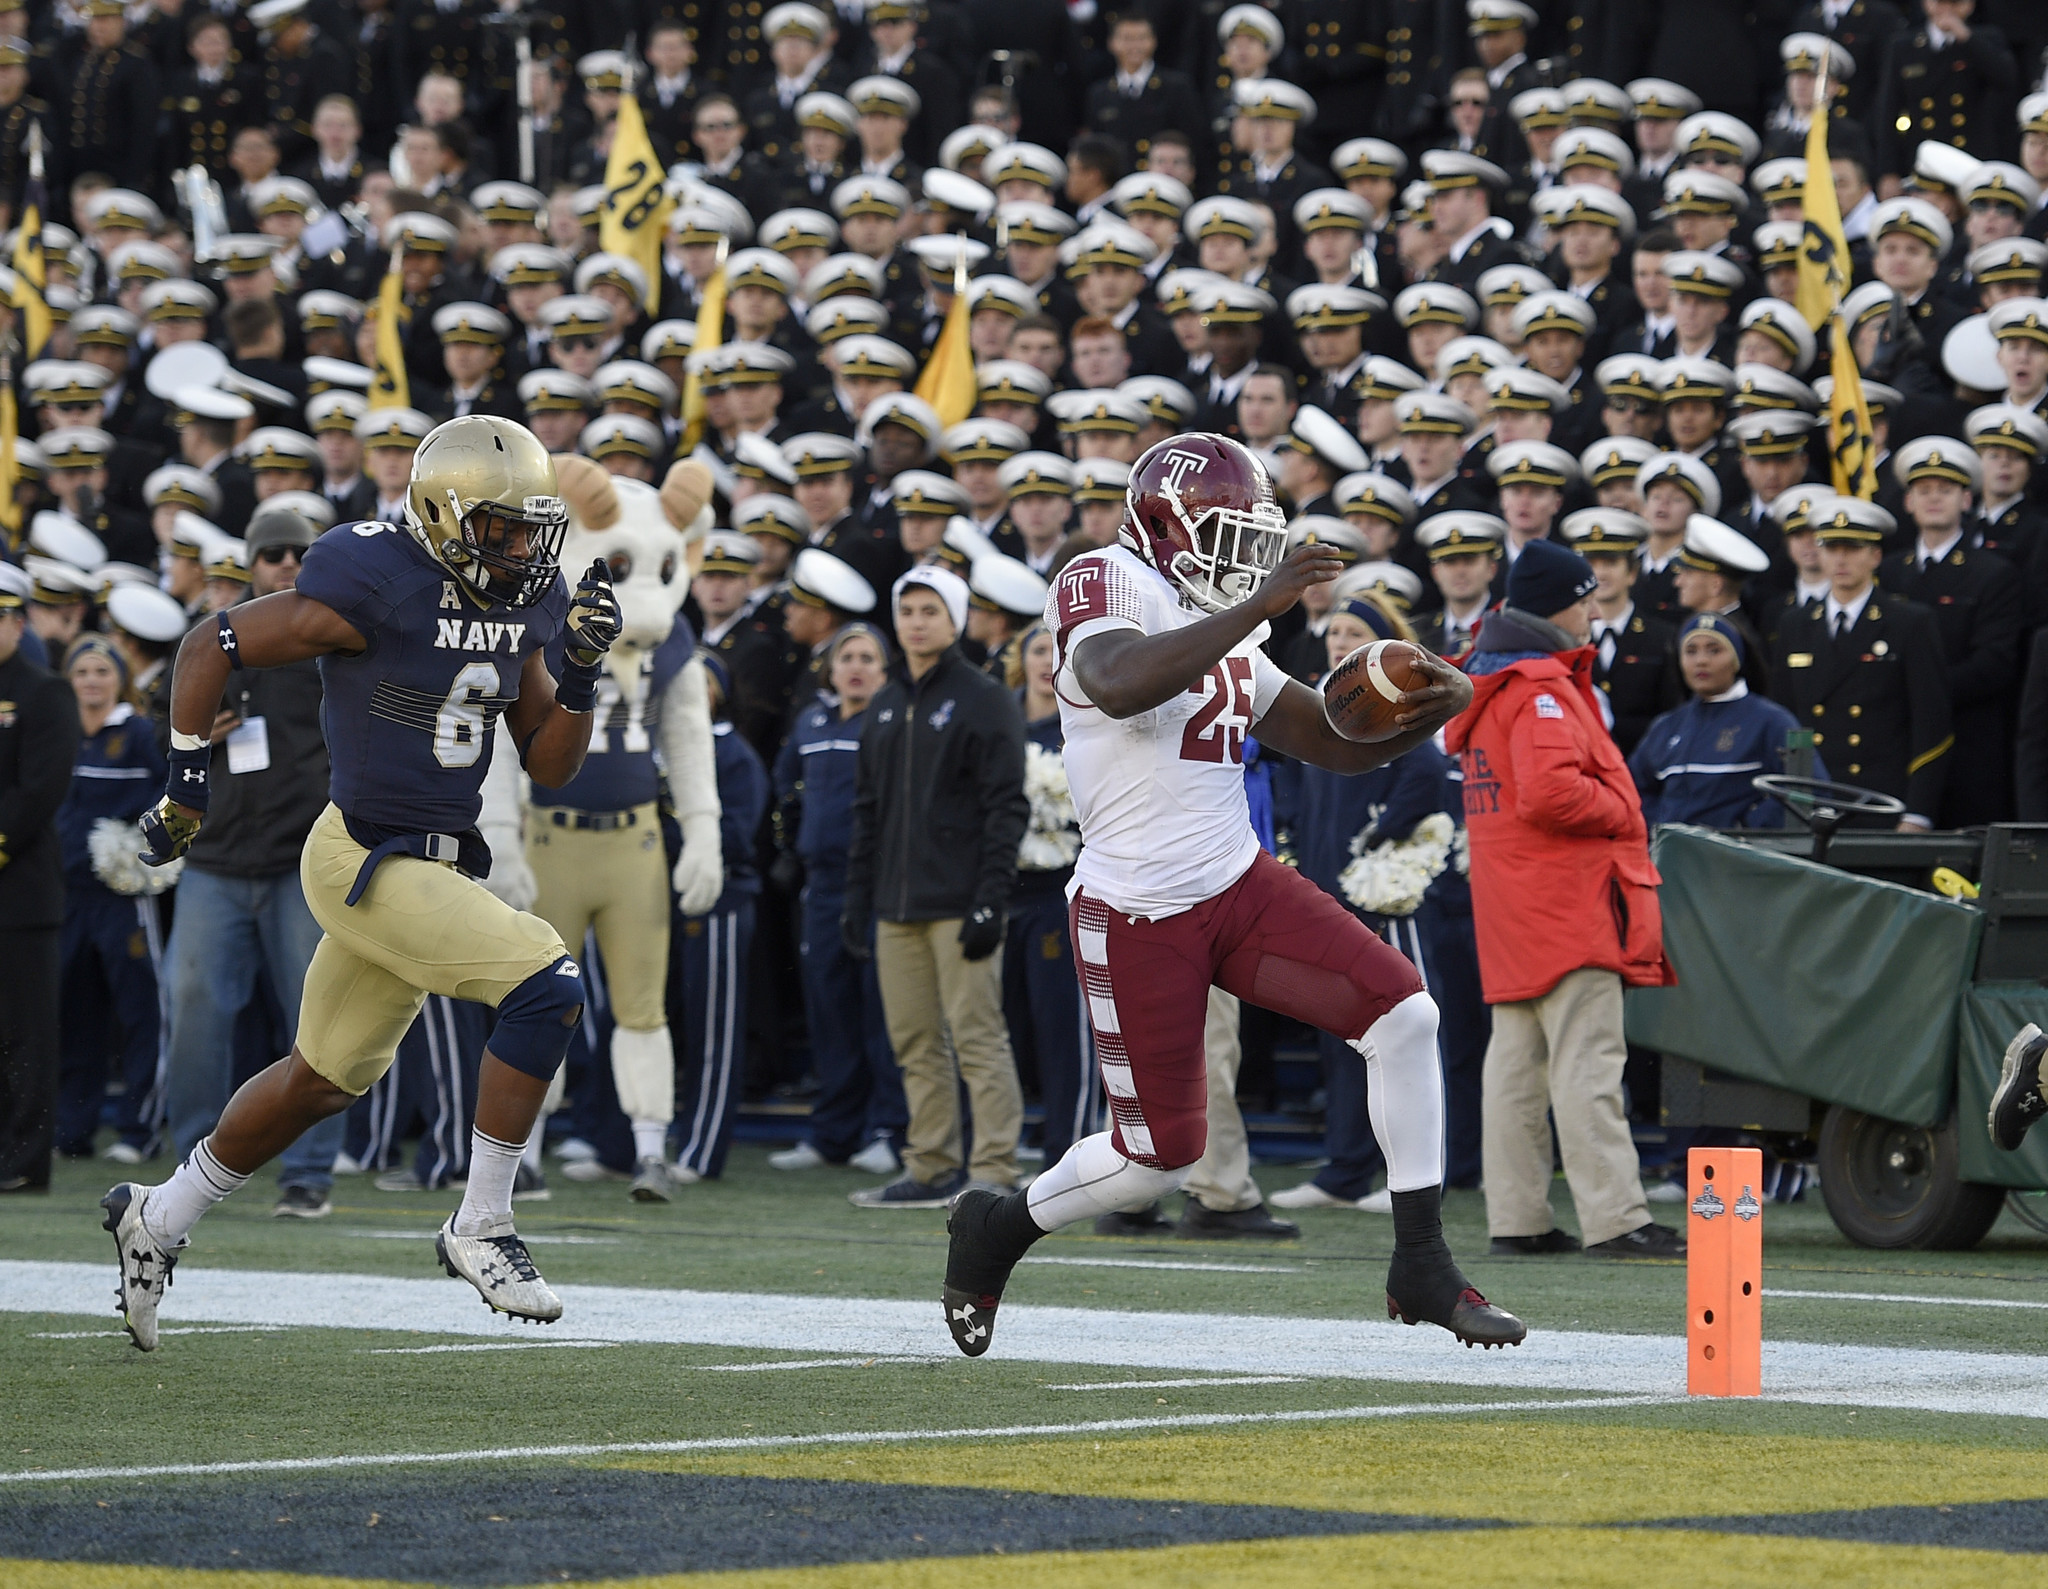 College Football Rankings: Temple Owls